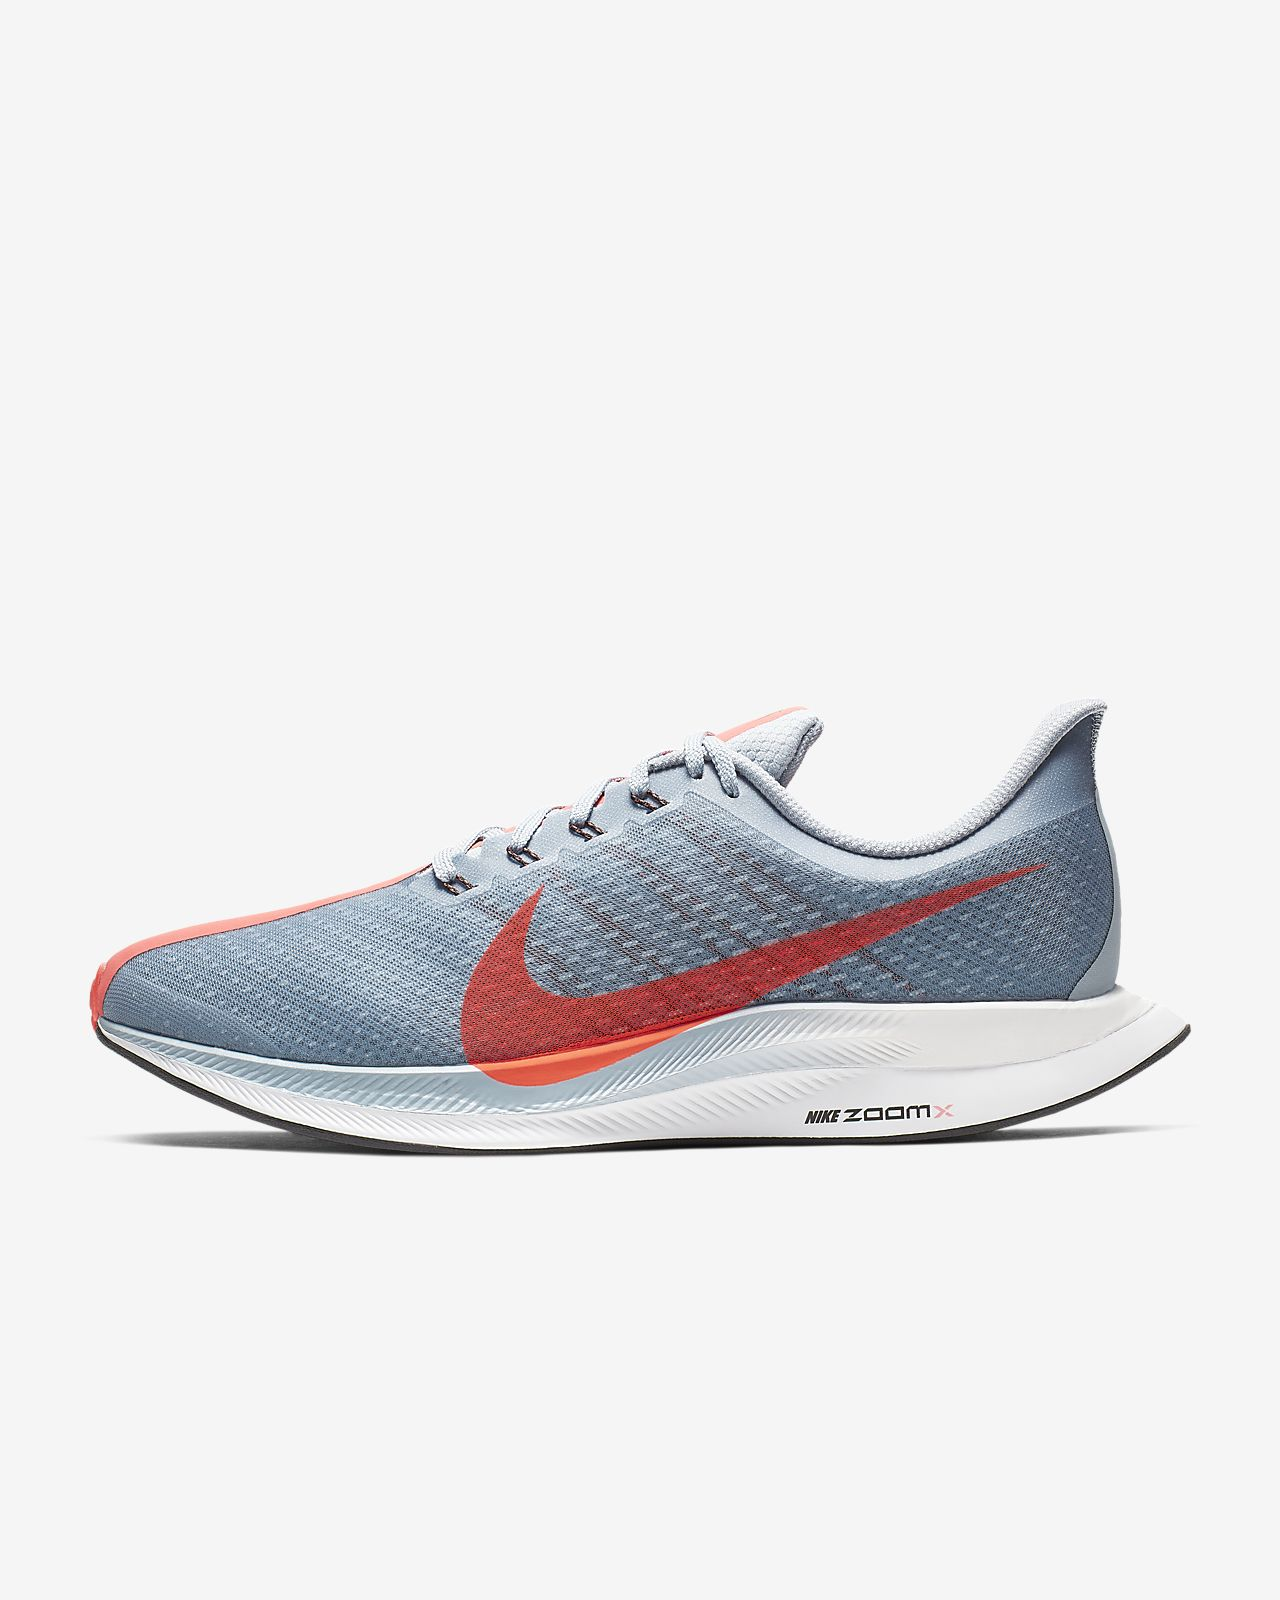 premium selection abd2a 701ce Low Resolution Nike Zoom Pegasus Turbo løpesko til herre Nike Zoom Pegasus  Turbo løpesko til herre